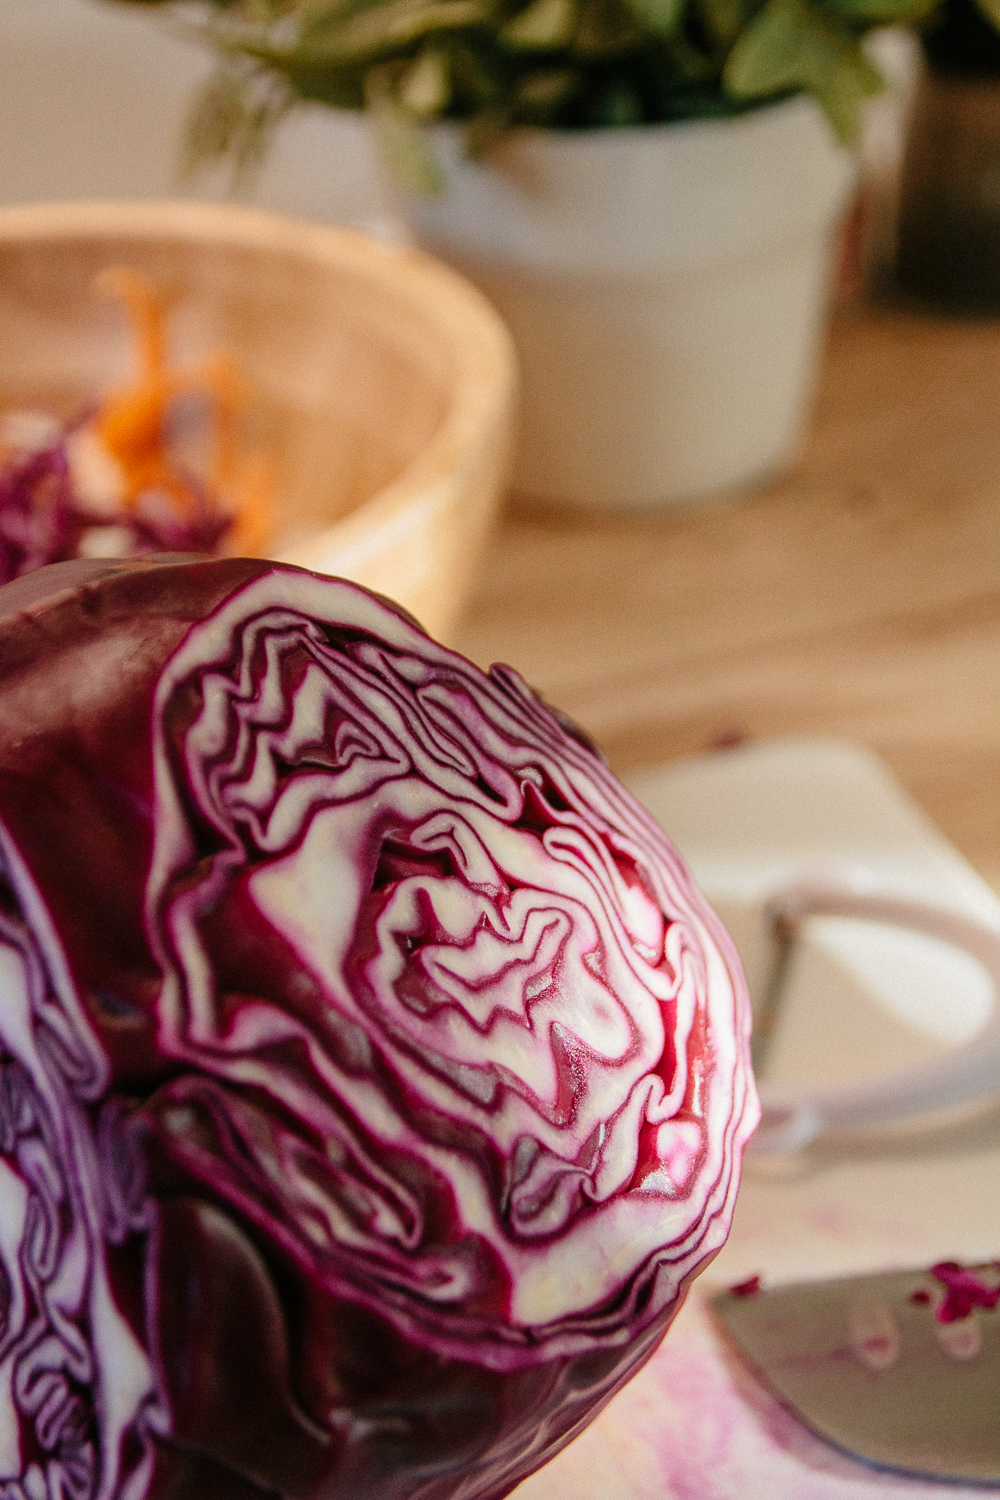 Details of a Red Cabbage